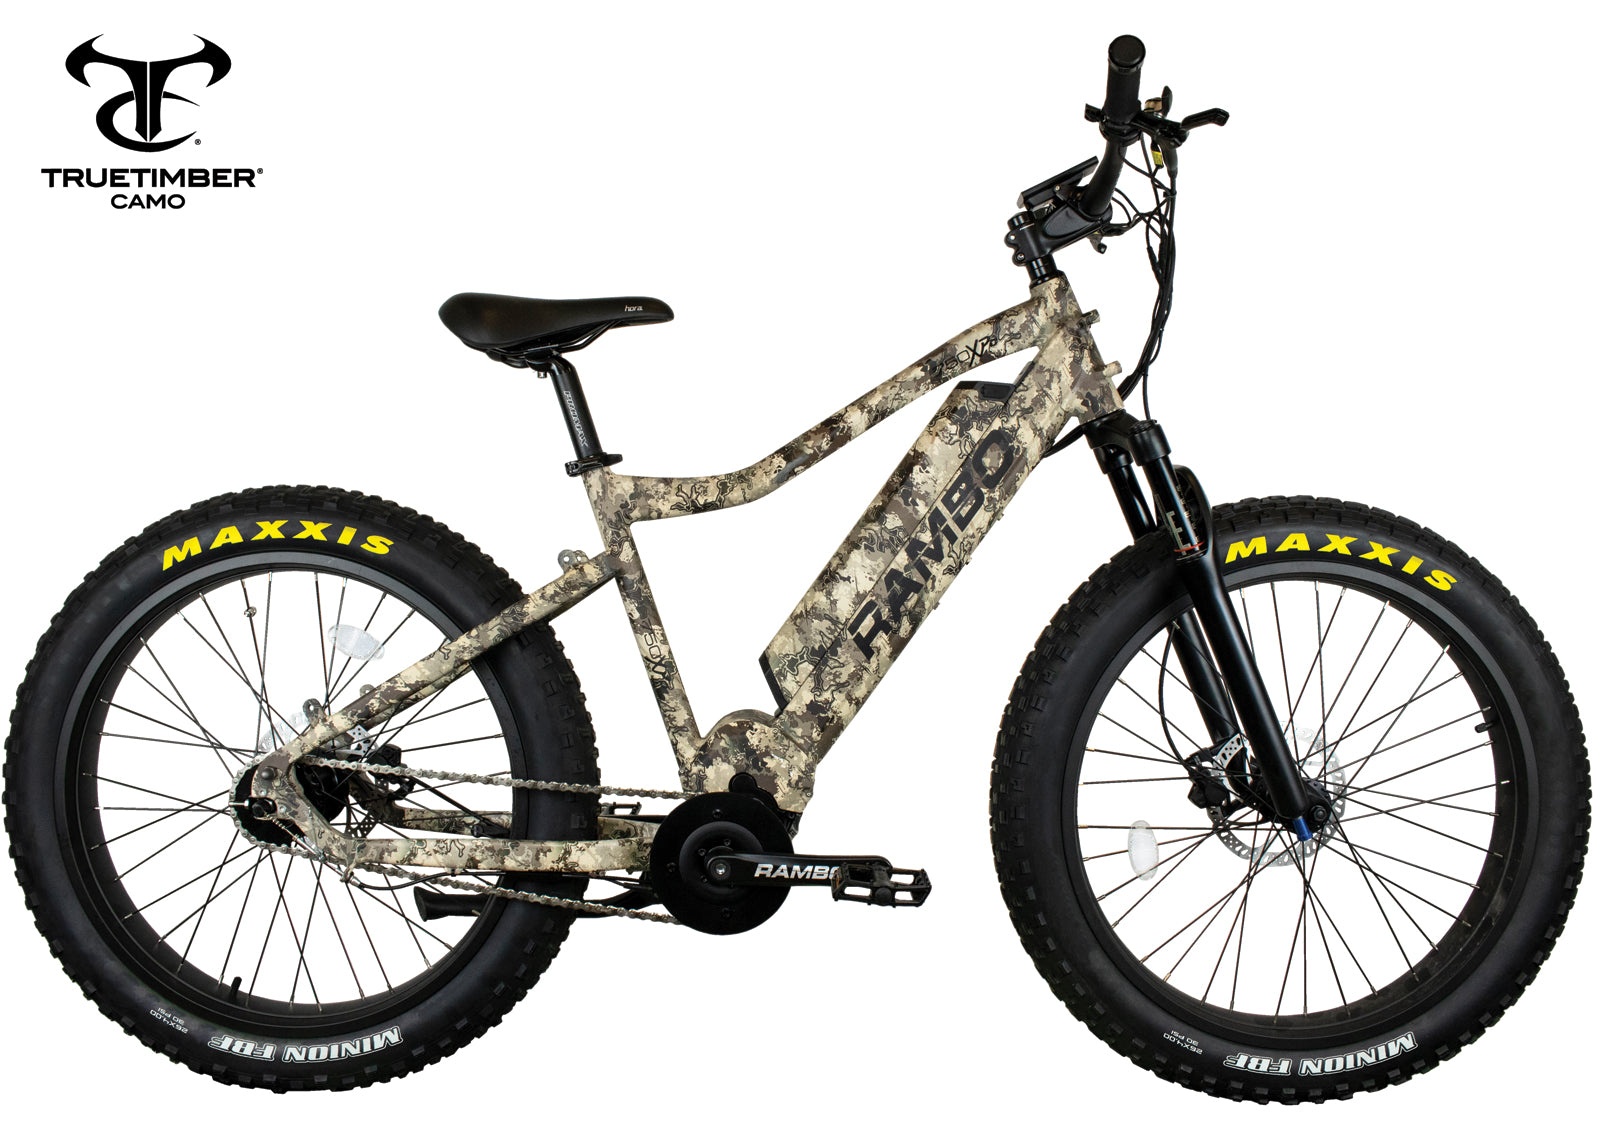 RAMBO NOMAD 750W XPC11 TRUE TIMBER VIPER WESTERN XTREME PERFORMANCE - Electric Bike TRUE TIMBER VIPER Ridetique.com